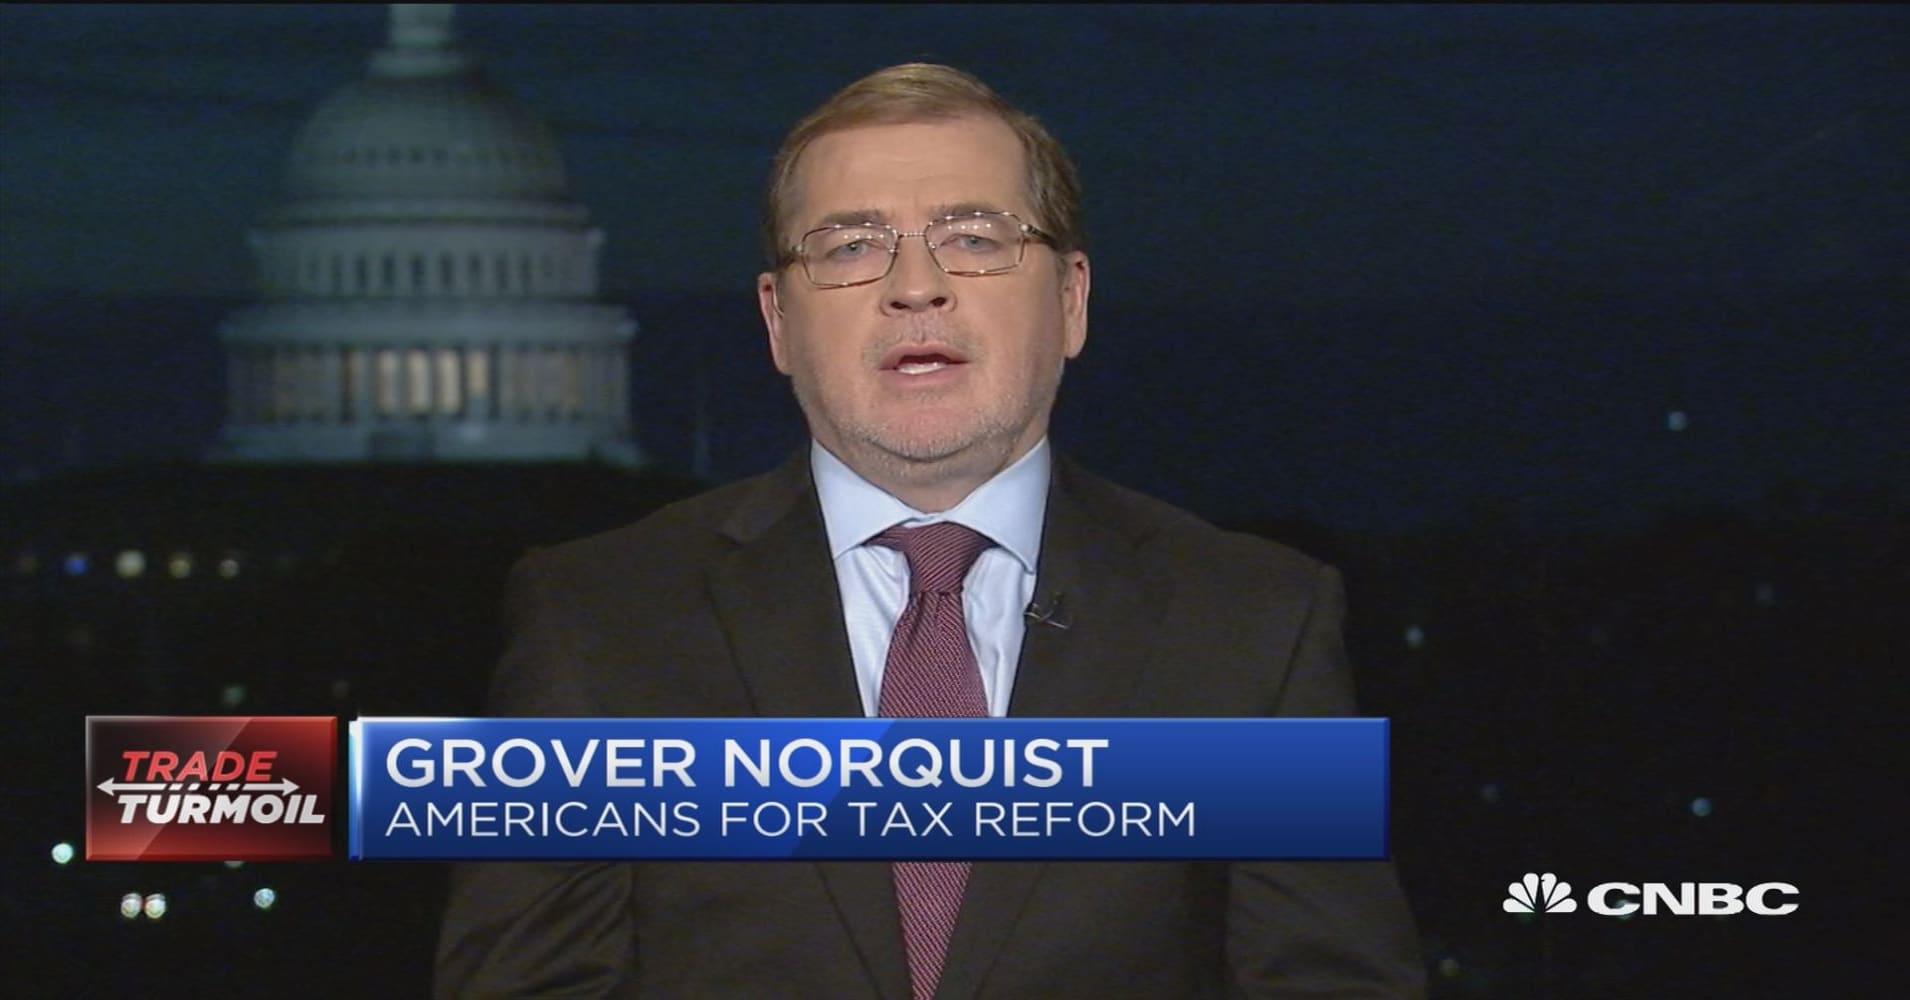 Influential anti-tax activist Grover Norquist to Trump: 'Tariffs are taxes' — leverage world outrage over China trade instead